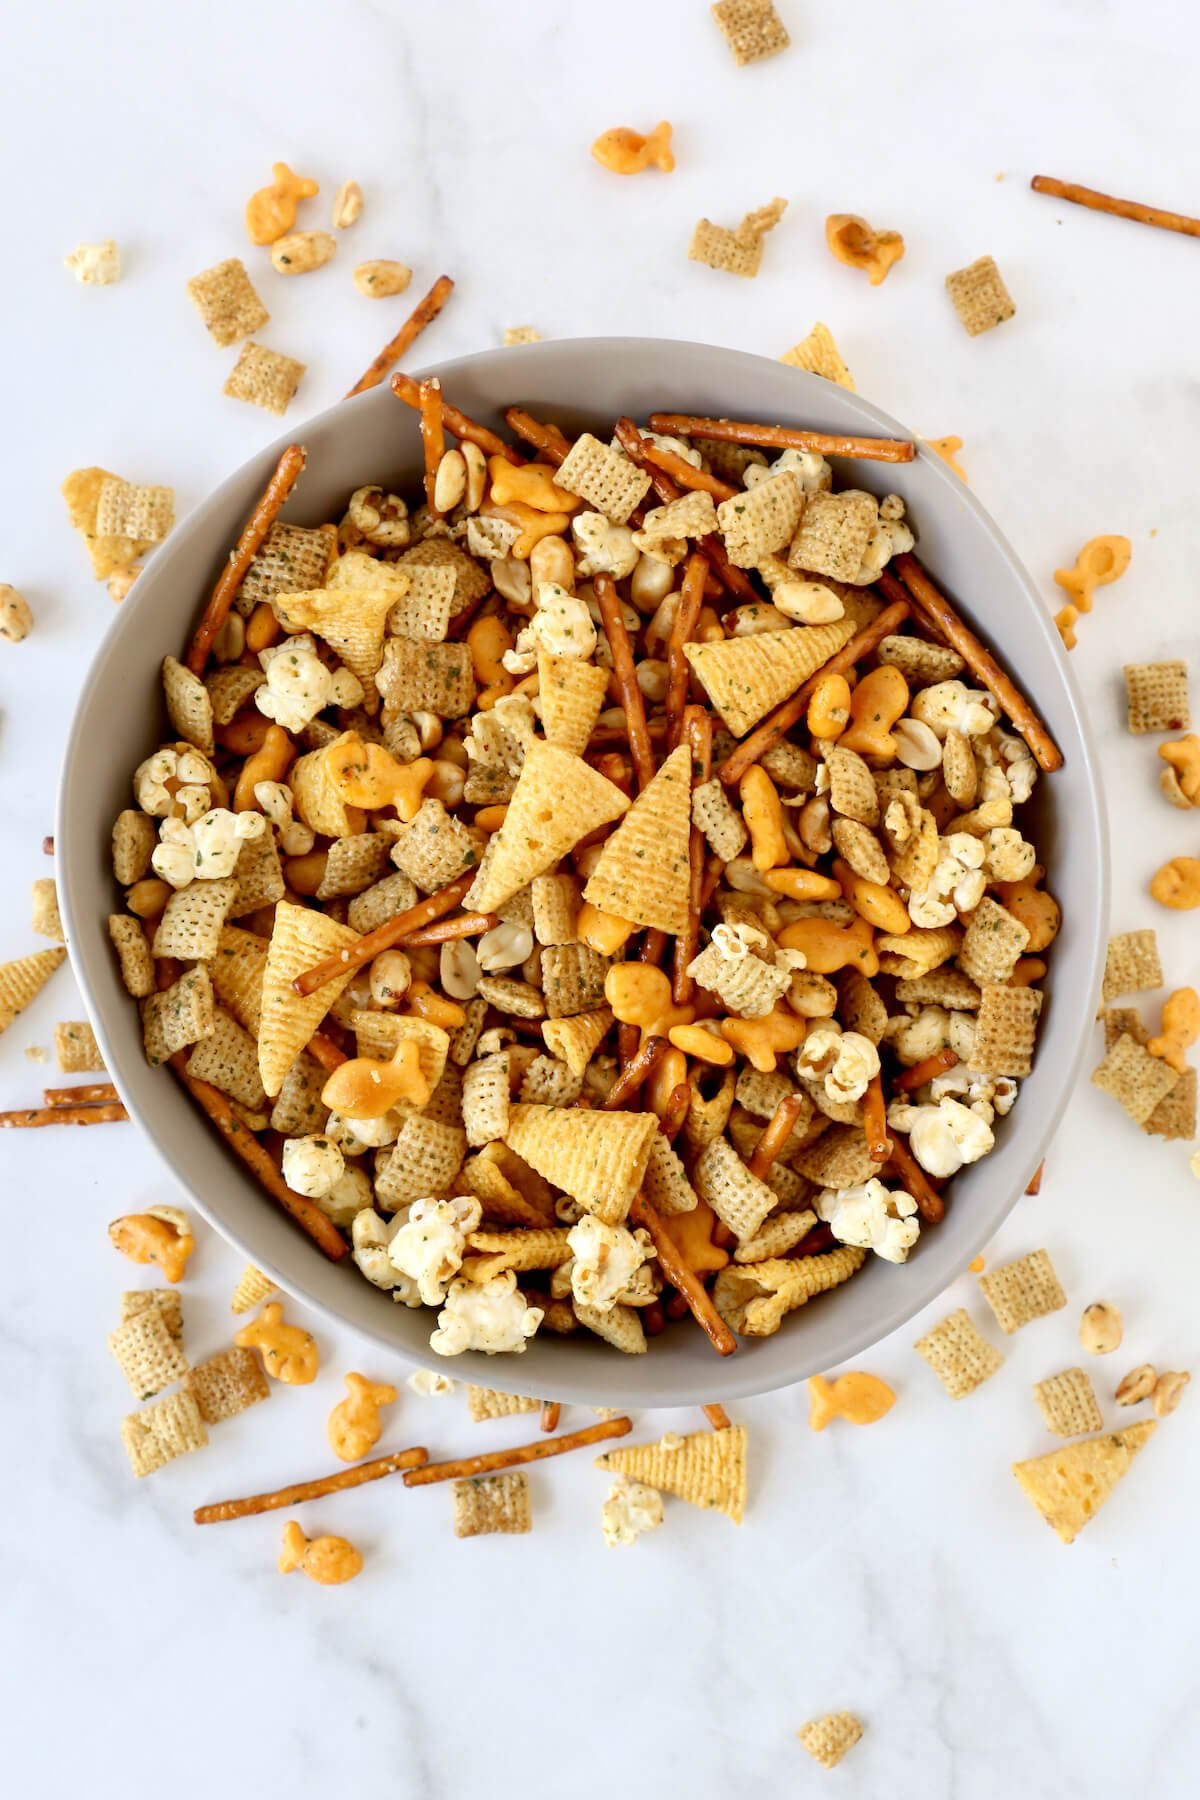 A gray bowl filled with seasoned pretzels, bugels, gold fish, popcorn, peanuts and chex cereal.